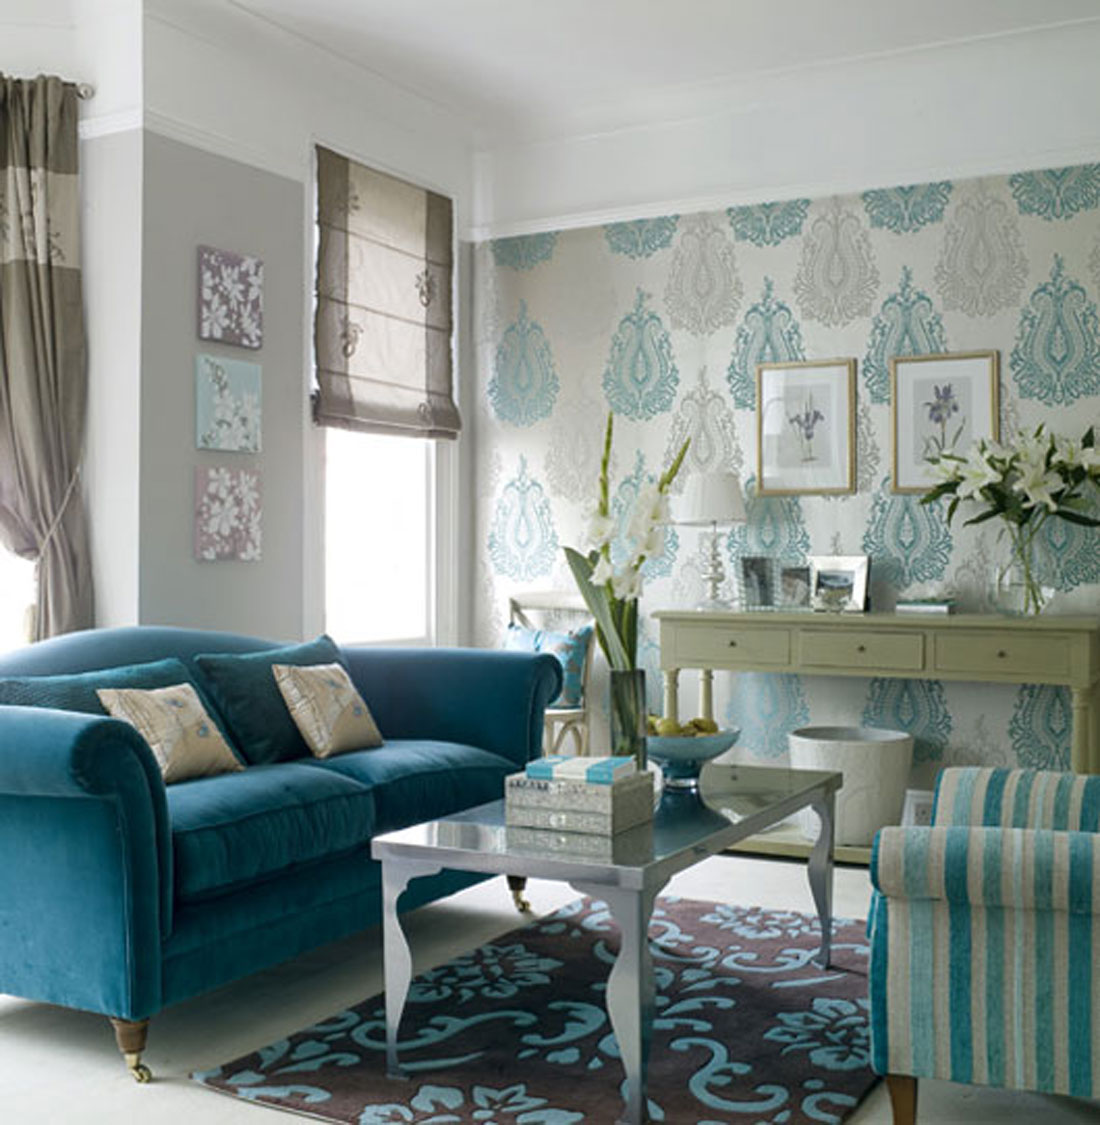 The texture of teal and turquoise a bold and beautiful for Turquoise and white living room ideas